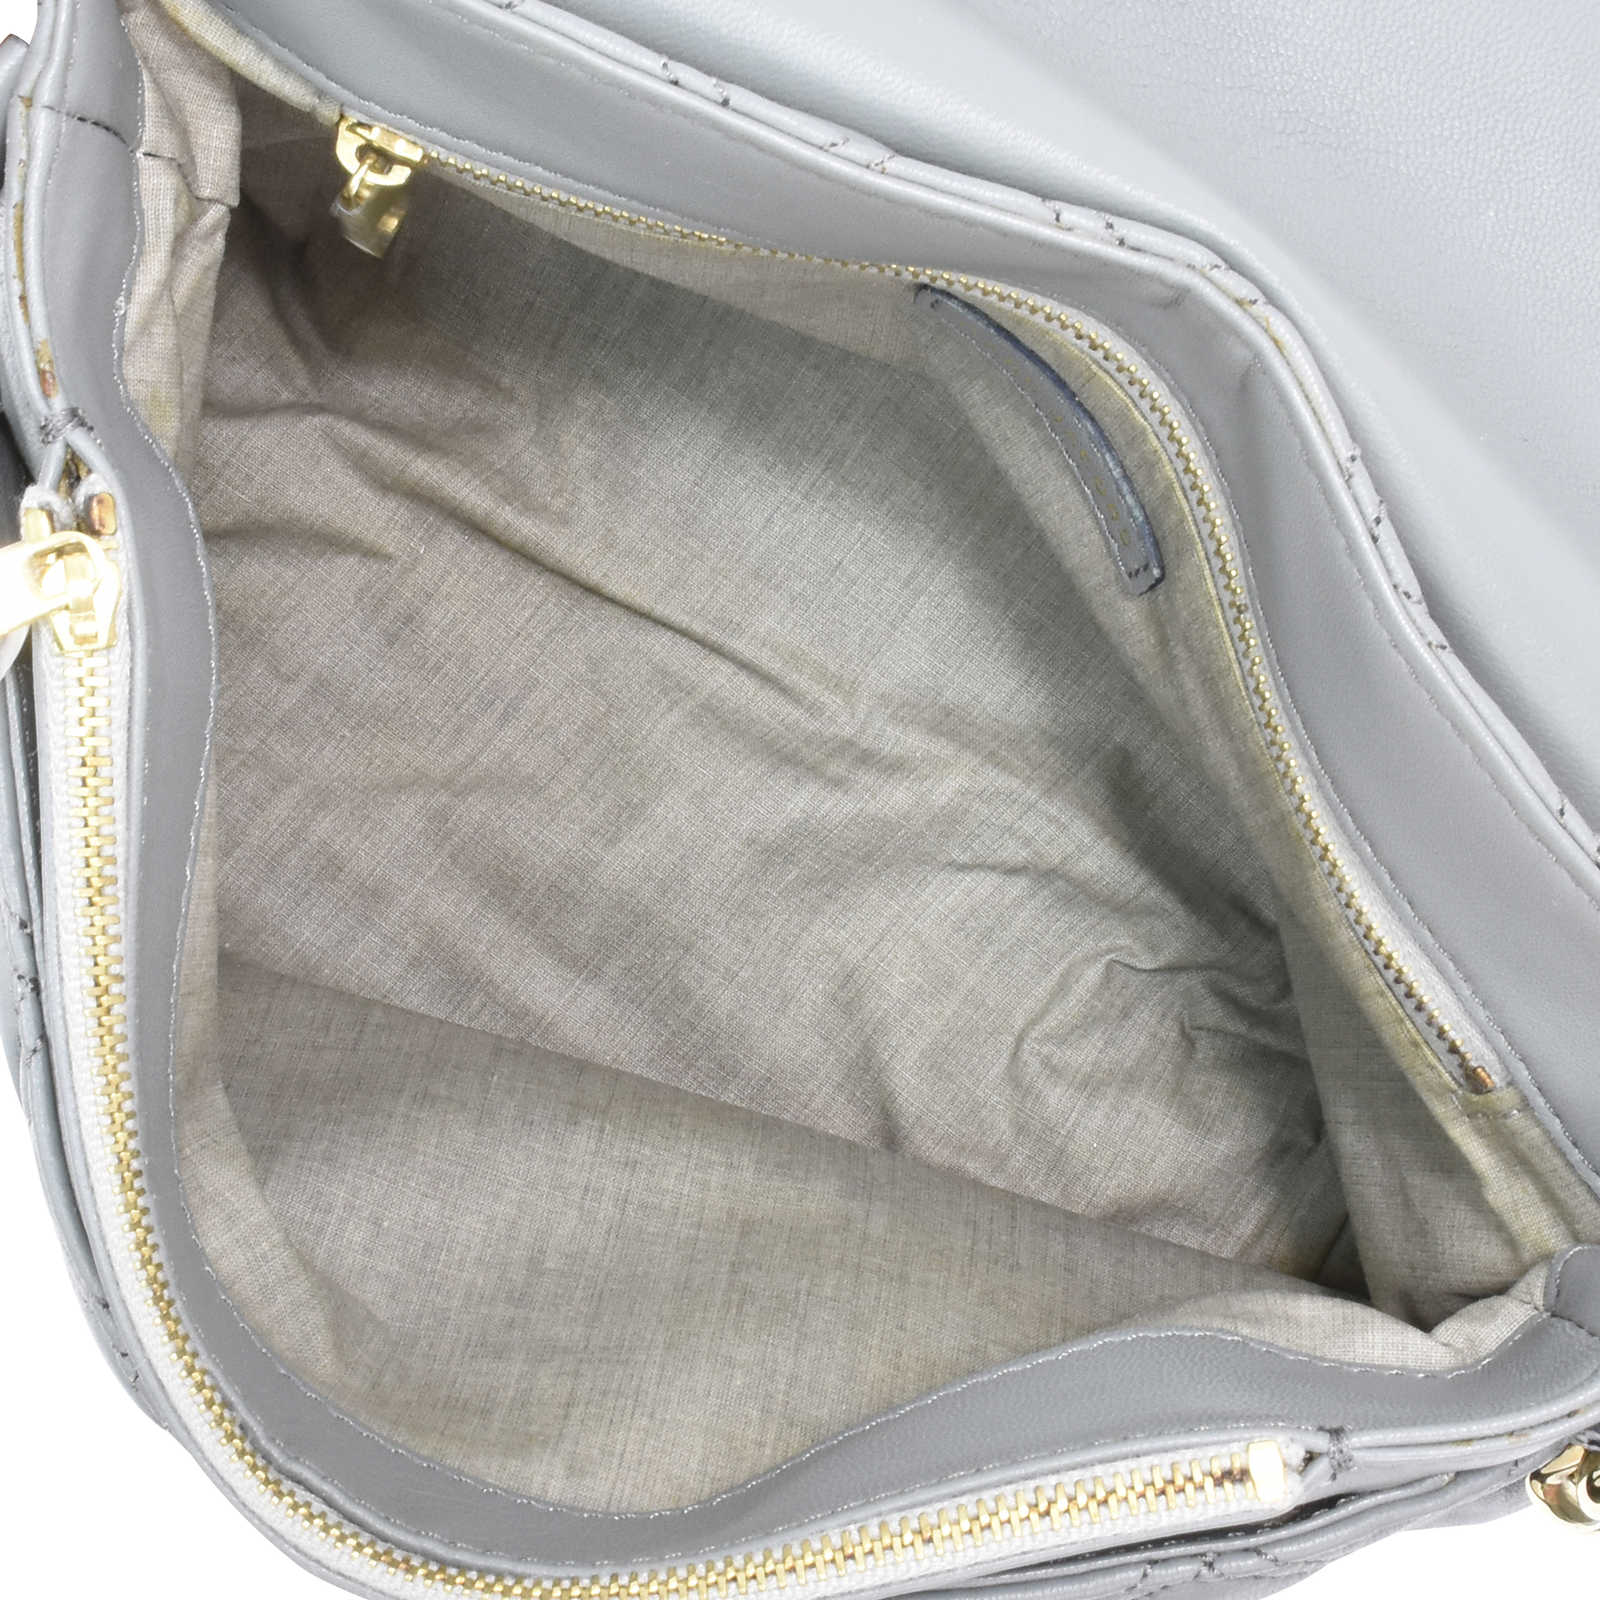 a039090ad18 ... Authentic Second Hand Marc Jacobs Skinny Single Quilted Bag  (PSS-364-00002)